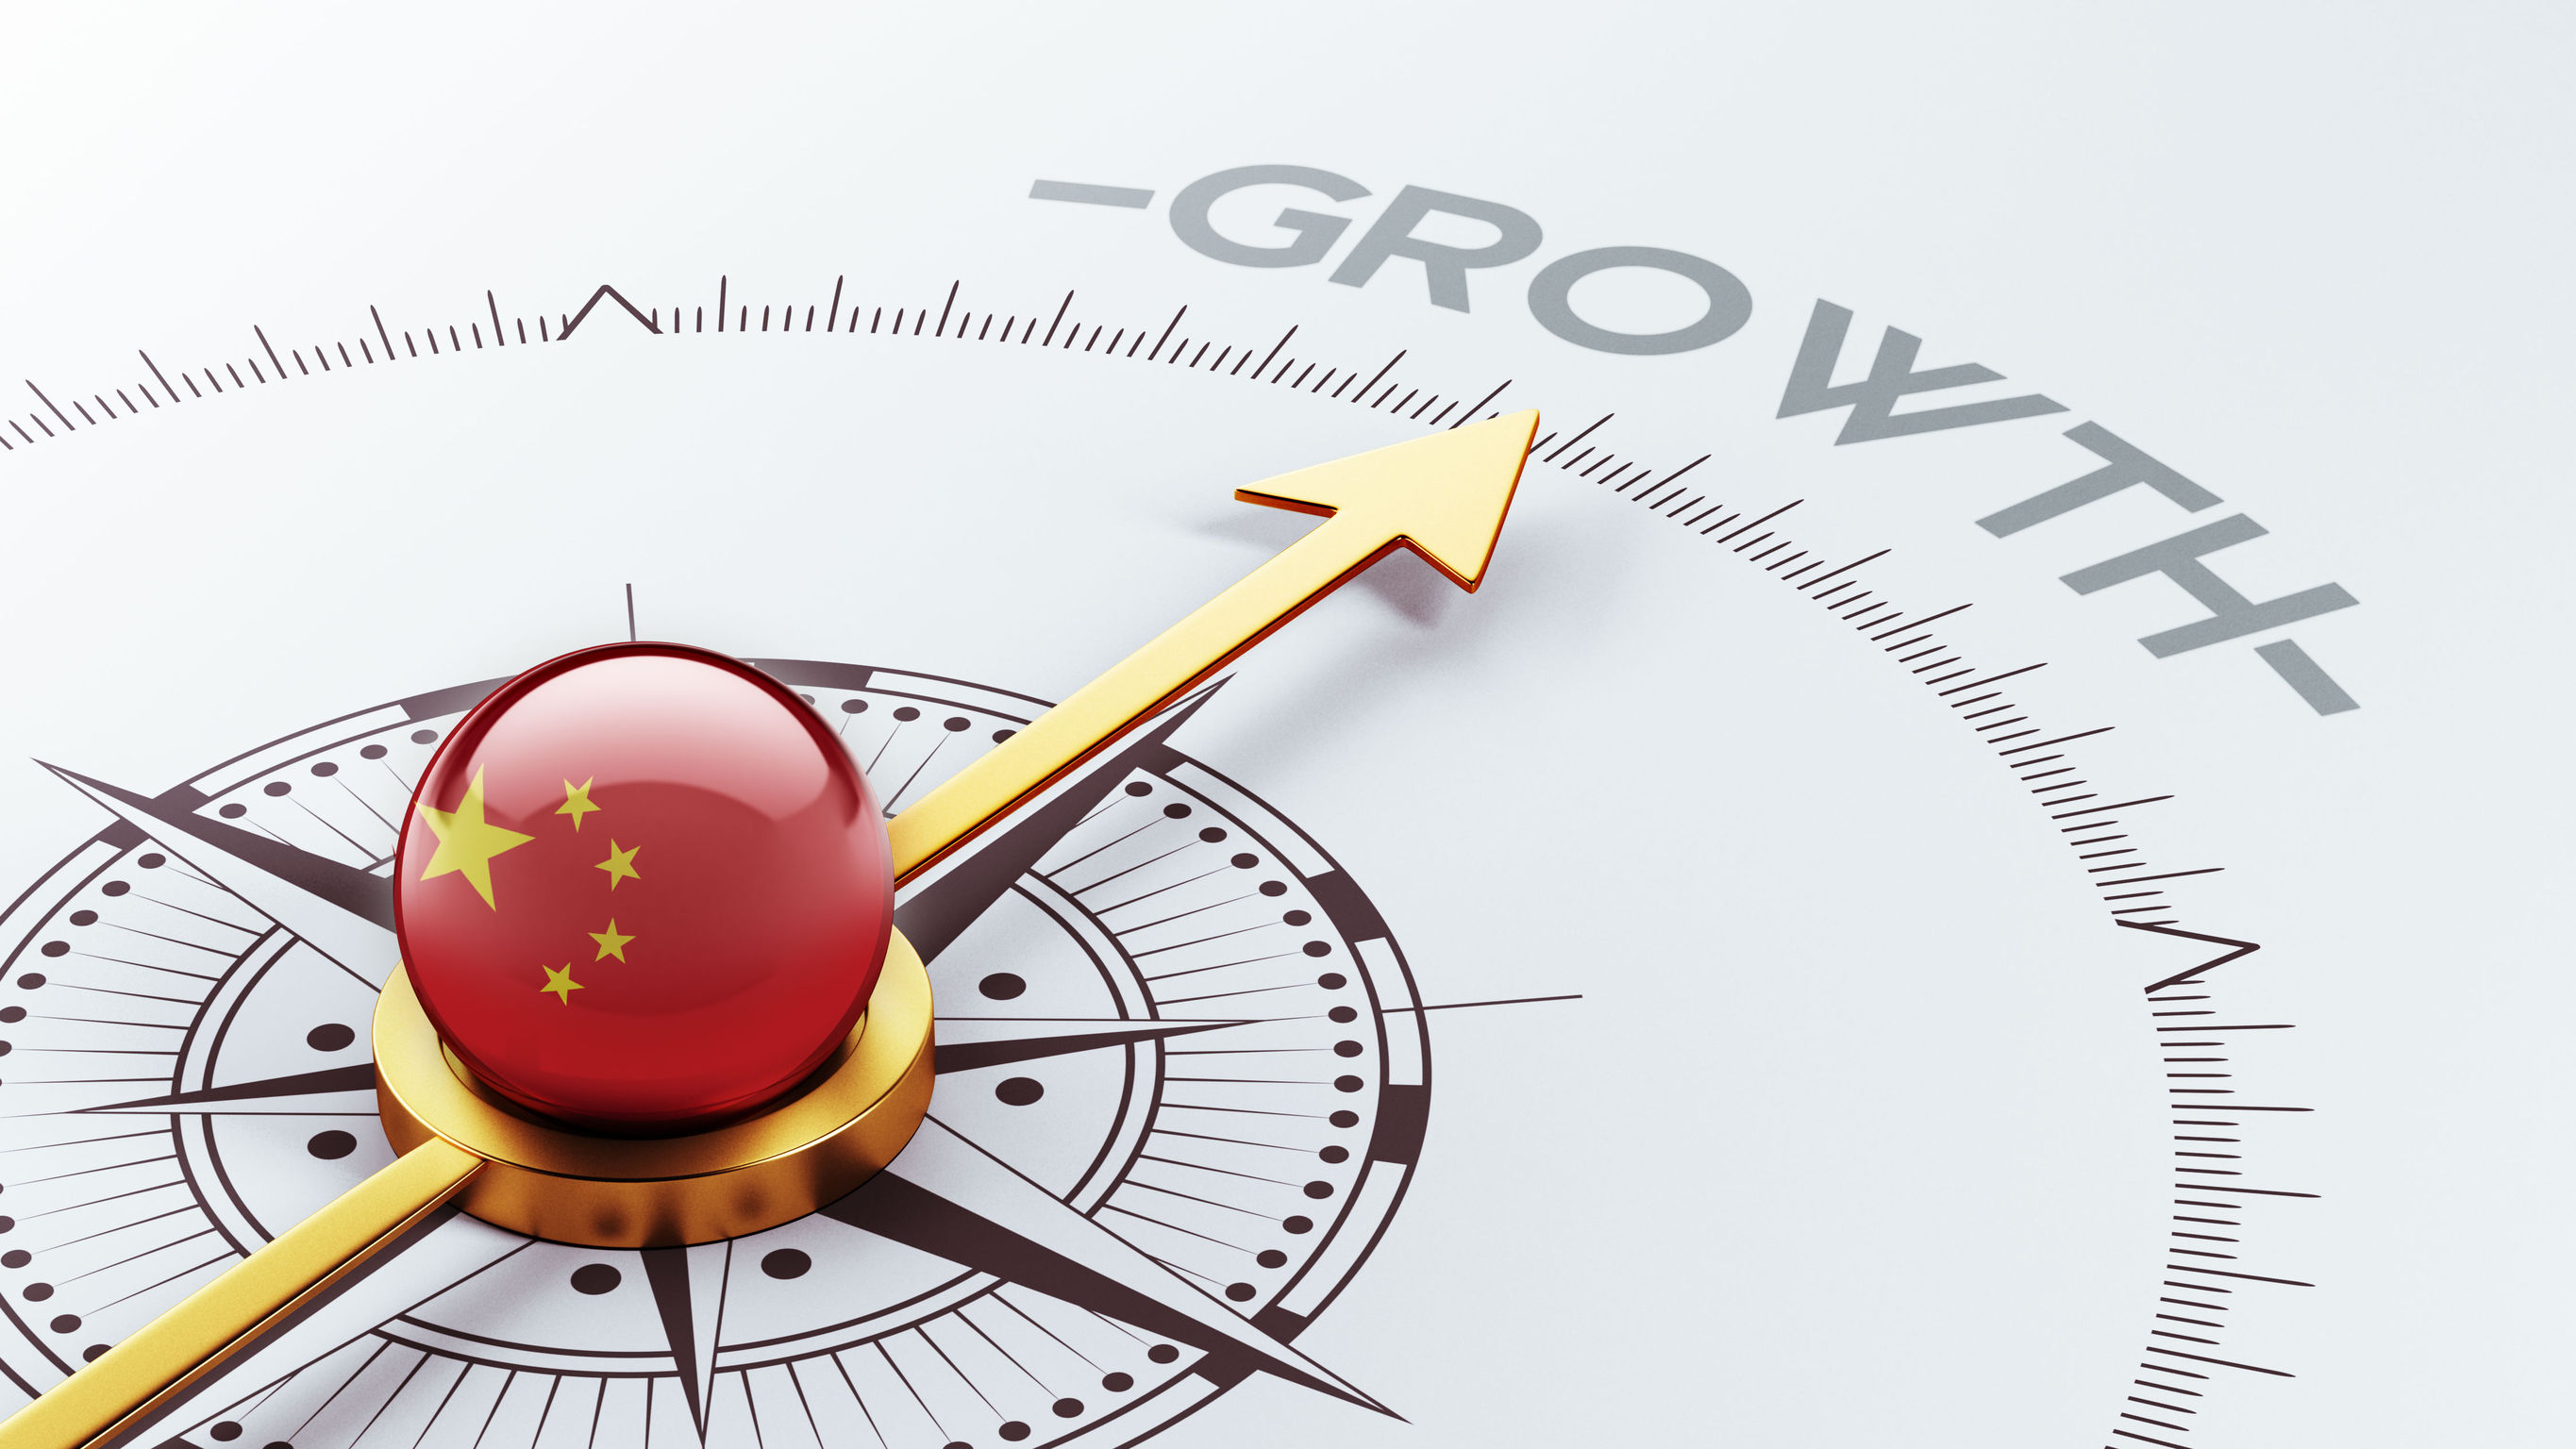 alibaba competing in china and beyond essay Alibaba cloud has seven availability zones in china alone, seven more across asia pacific and hong kong, two in the us, one in dubai, and one in frankfurt for europe it also now has local teams in four emea locations: the uk, germany, france and dubai.